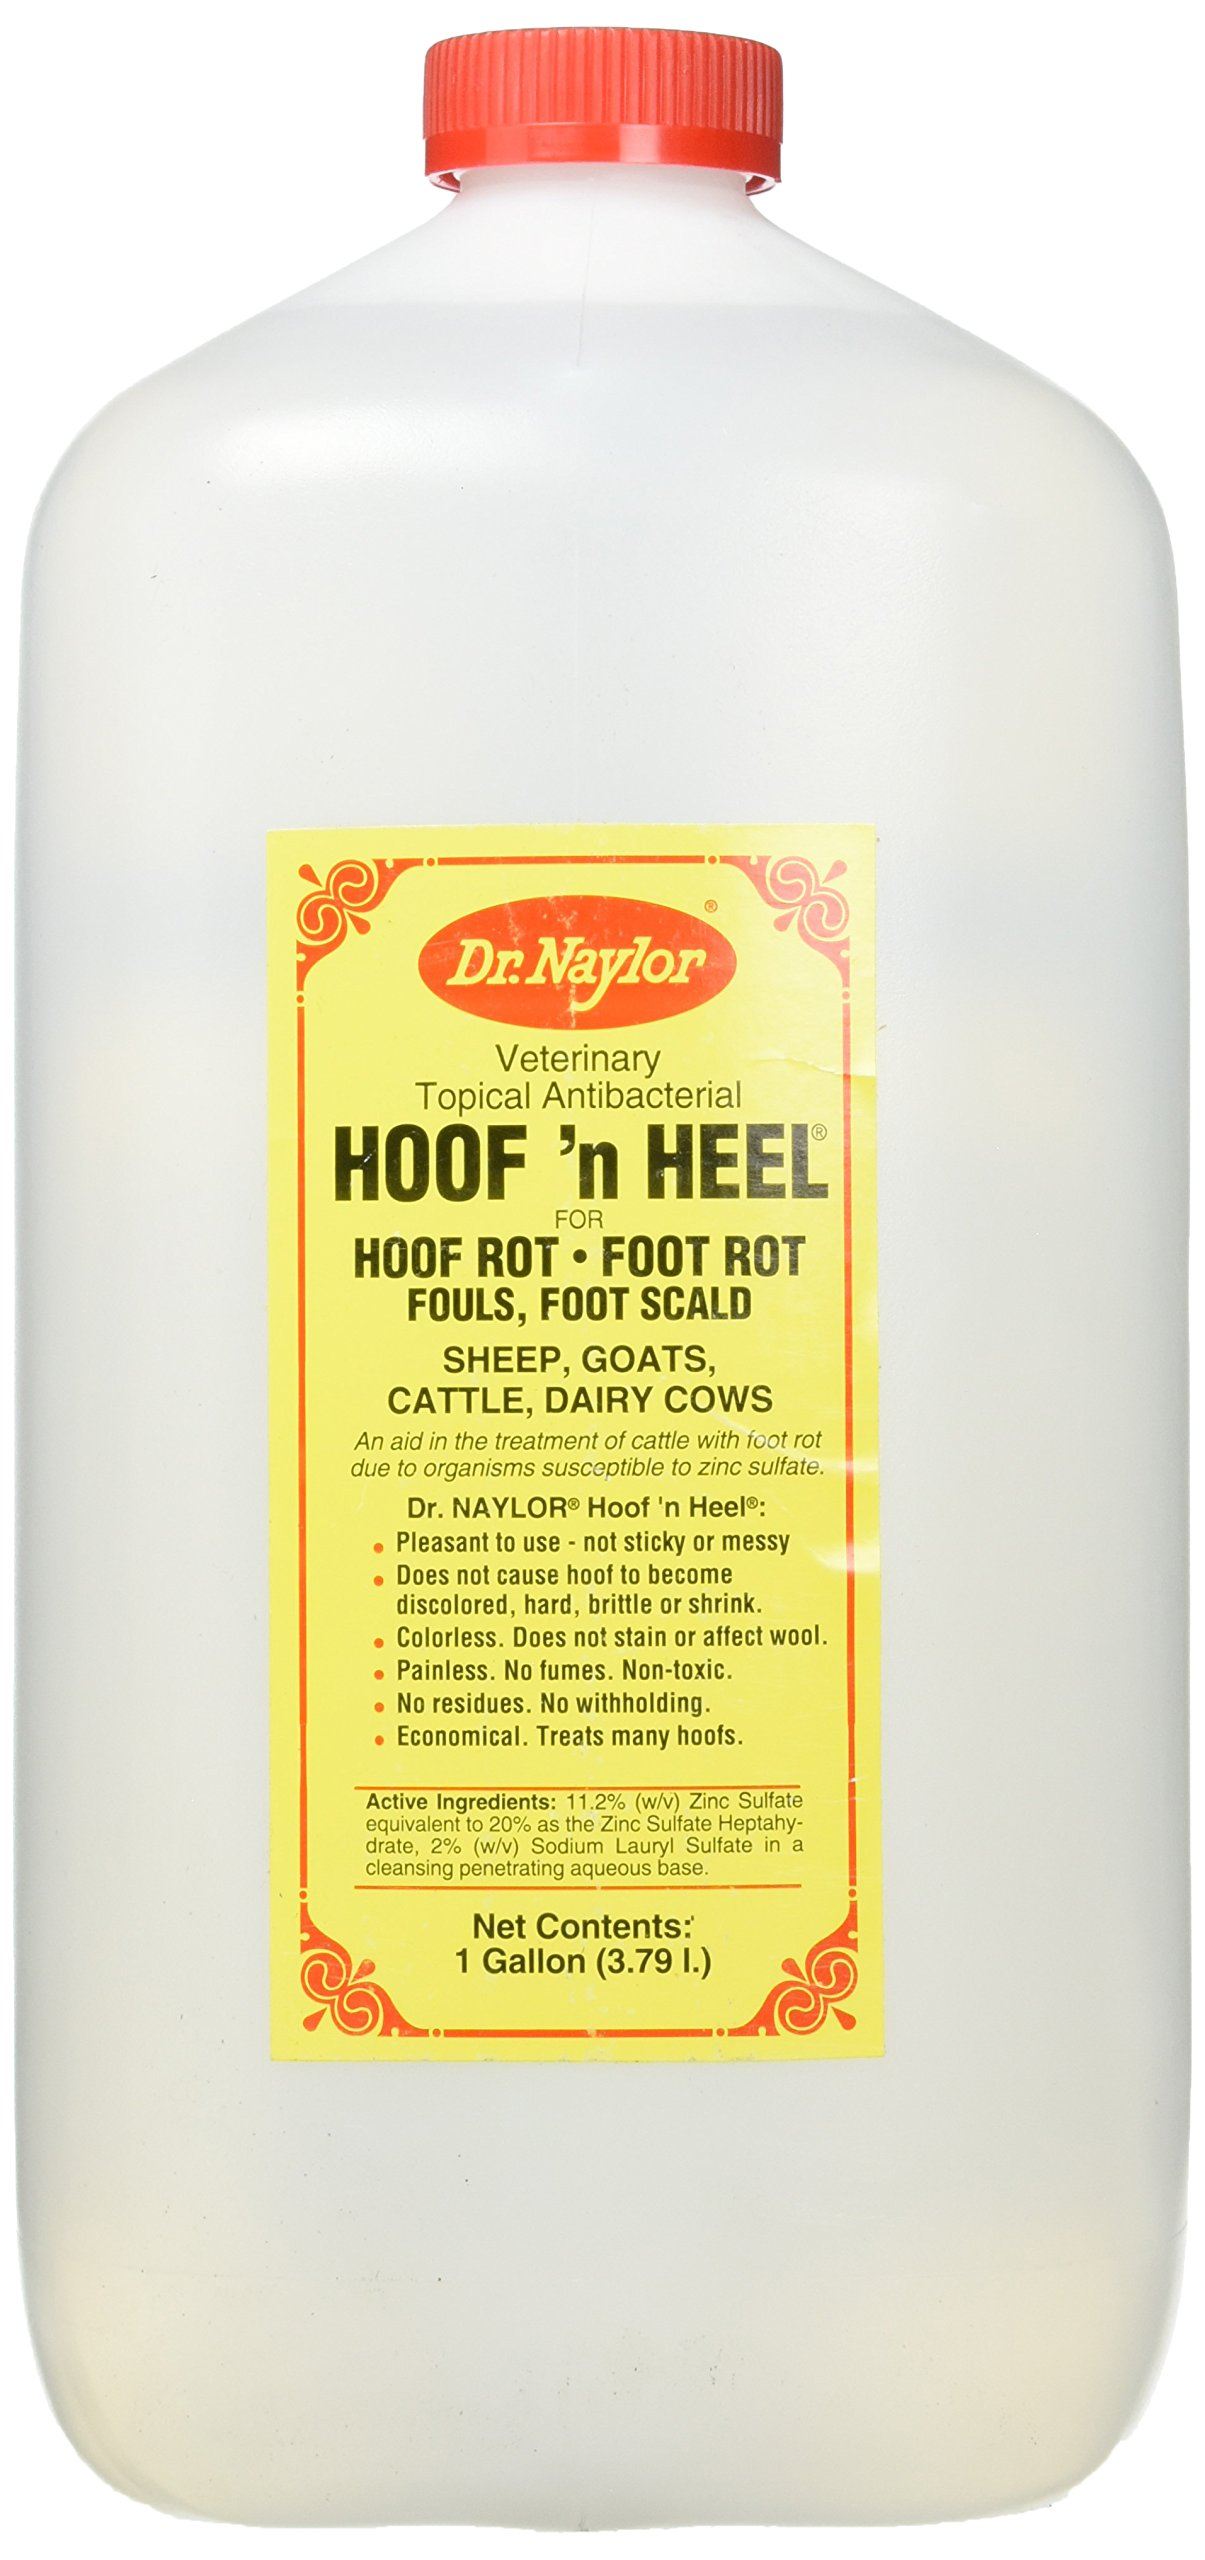 Dr. Naylor Hoof n' Heel (1 Gal ) - Traditional Foot Rot Treatment